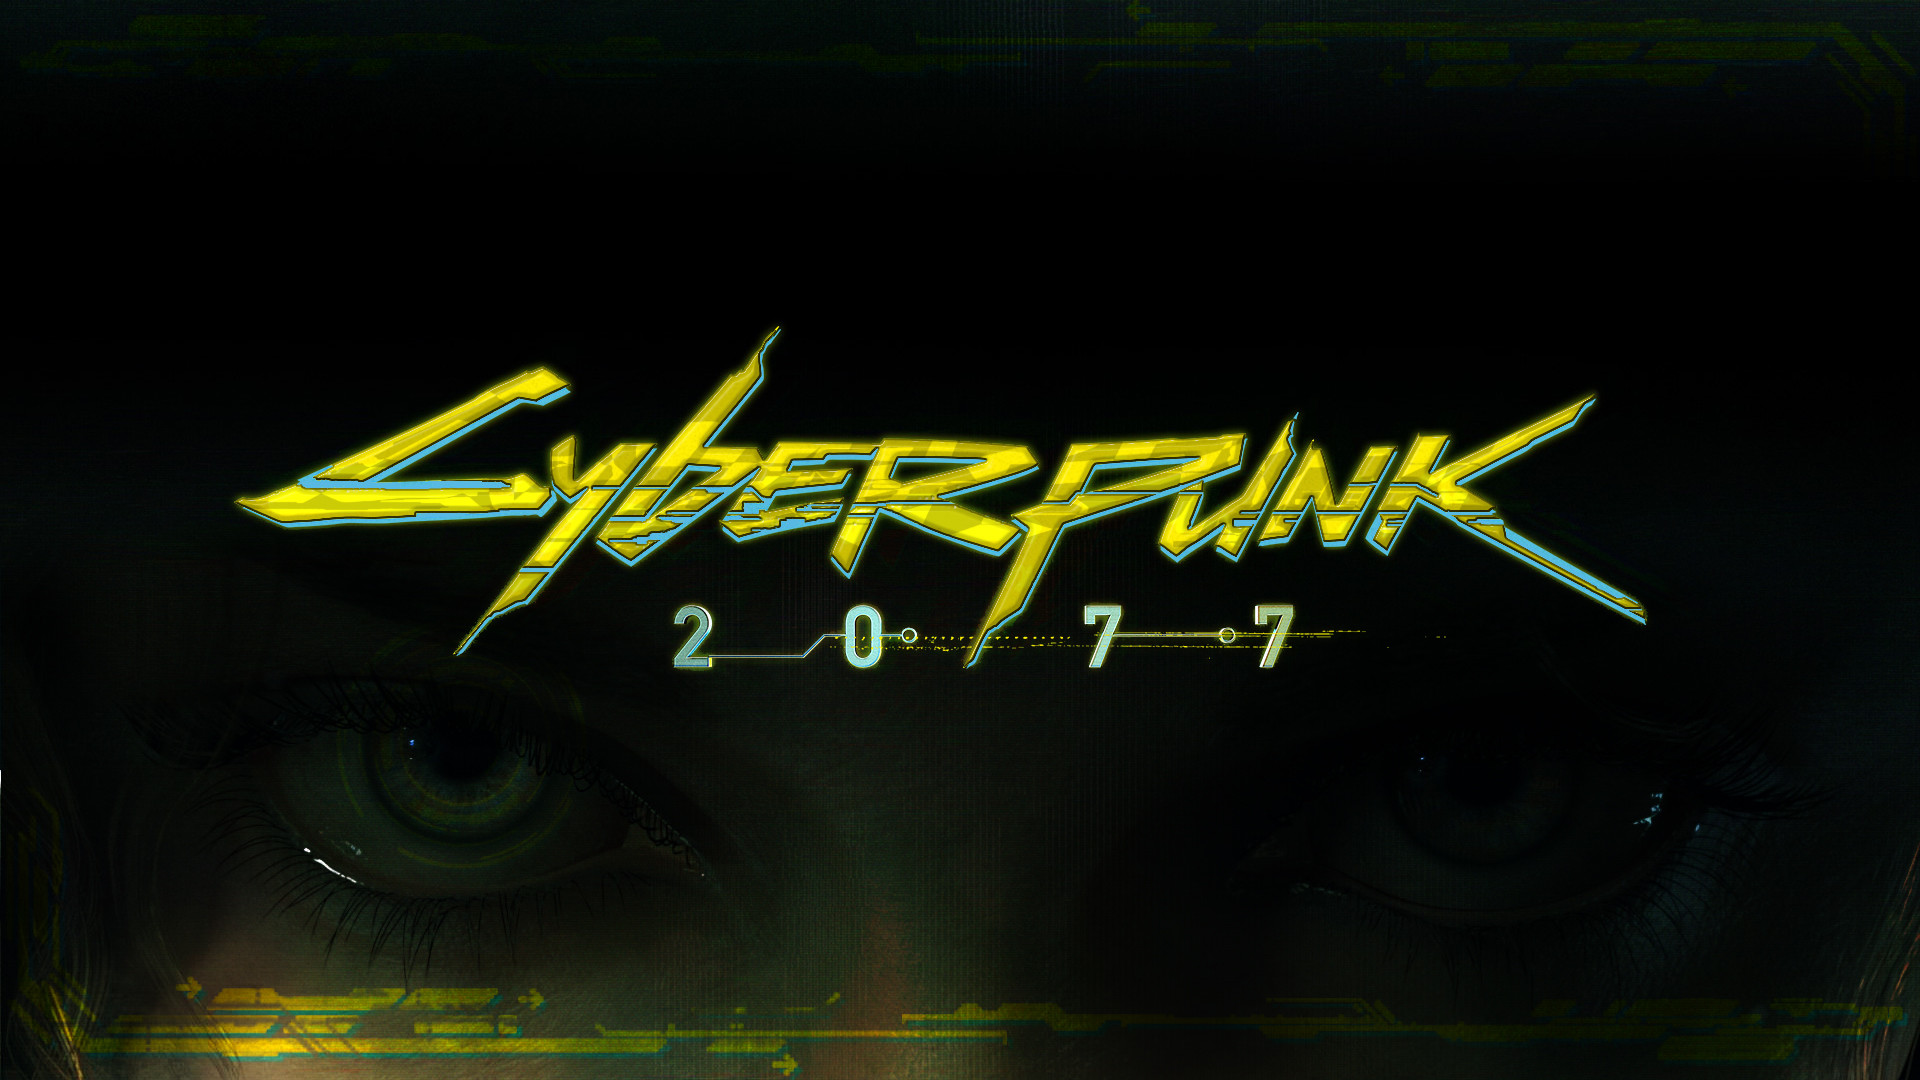 cyberpunk 2077 wallpapers by windyf on deviantart